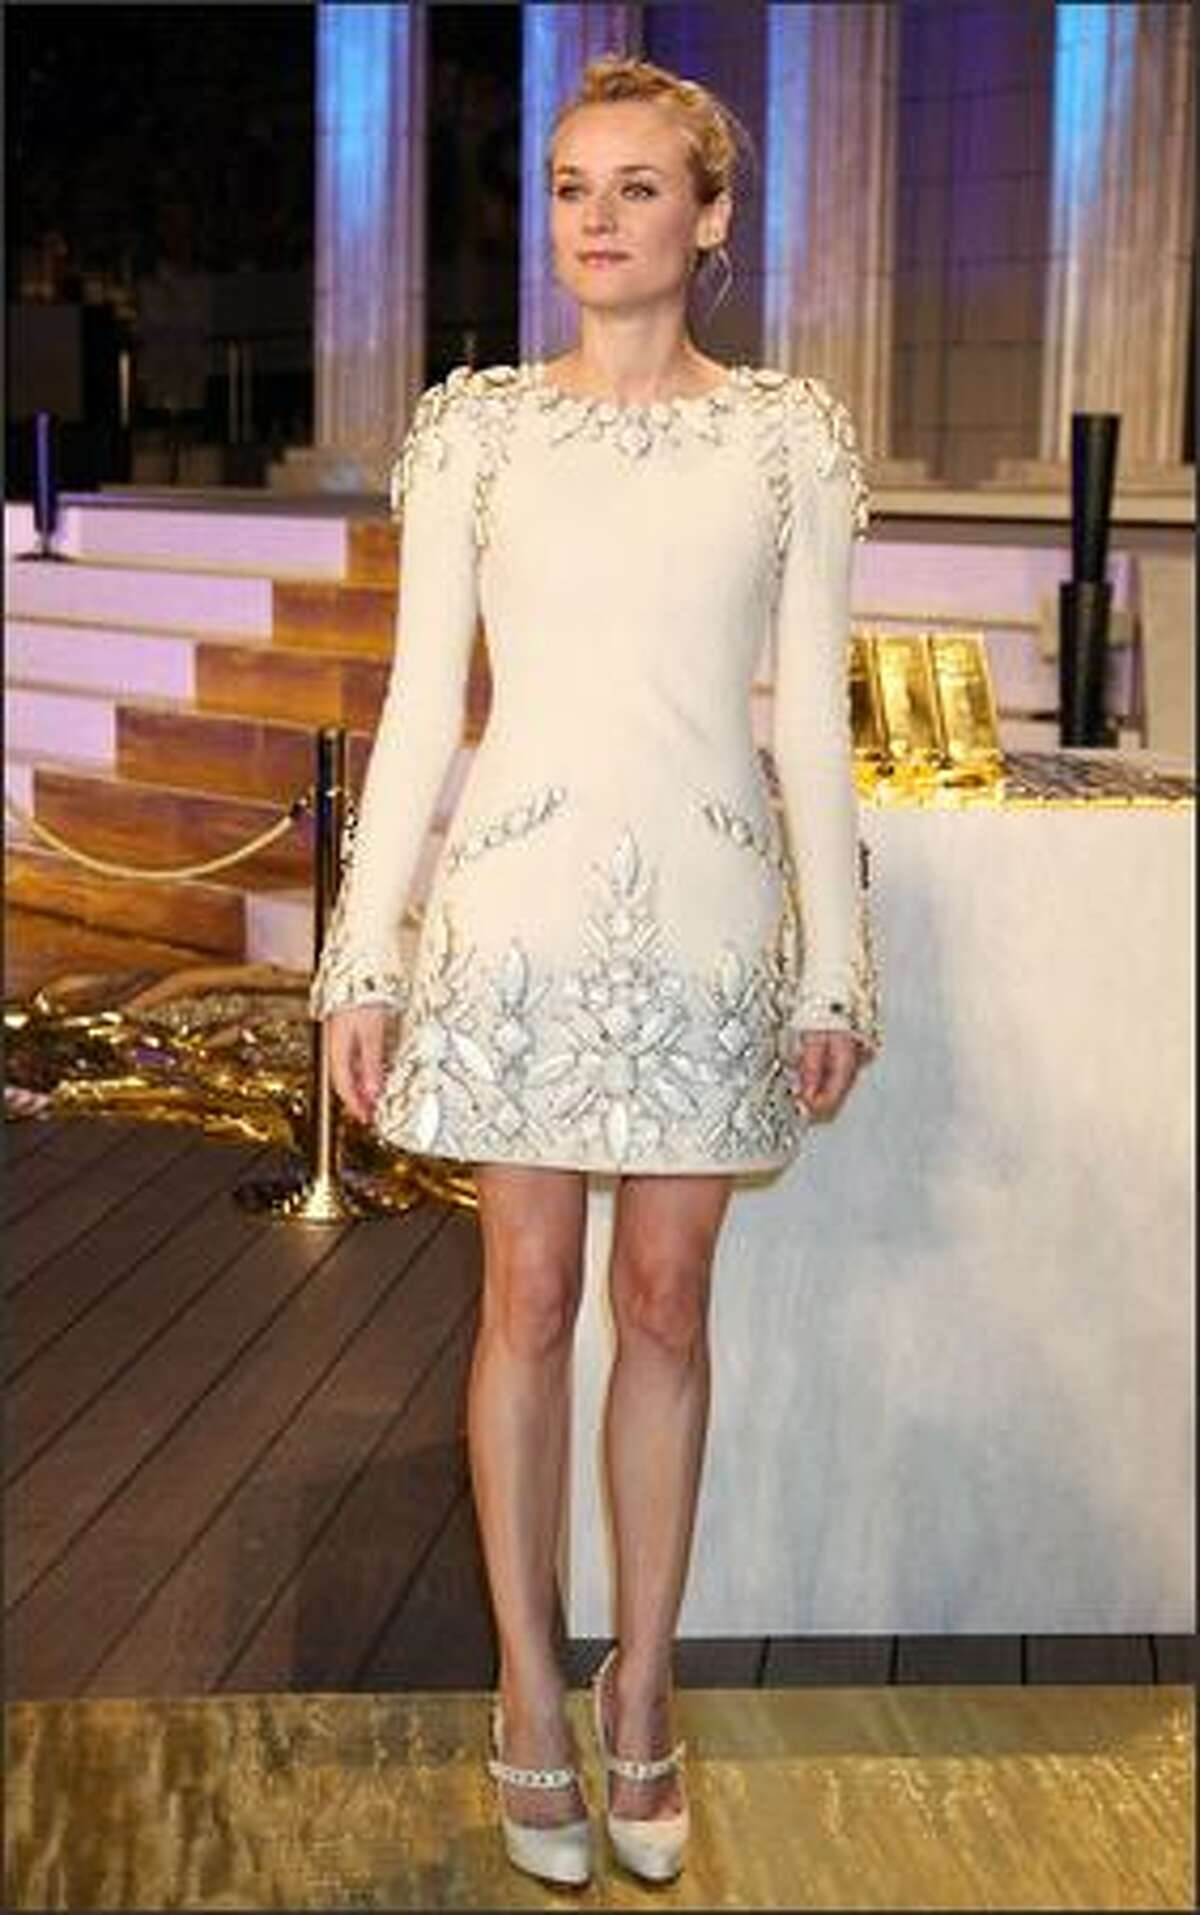 Actress Diane Kruger attends the Premiere for a film